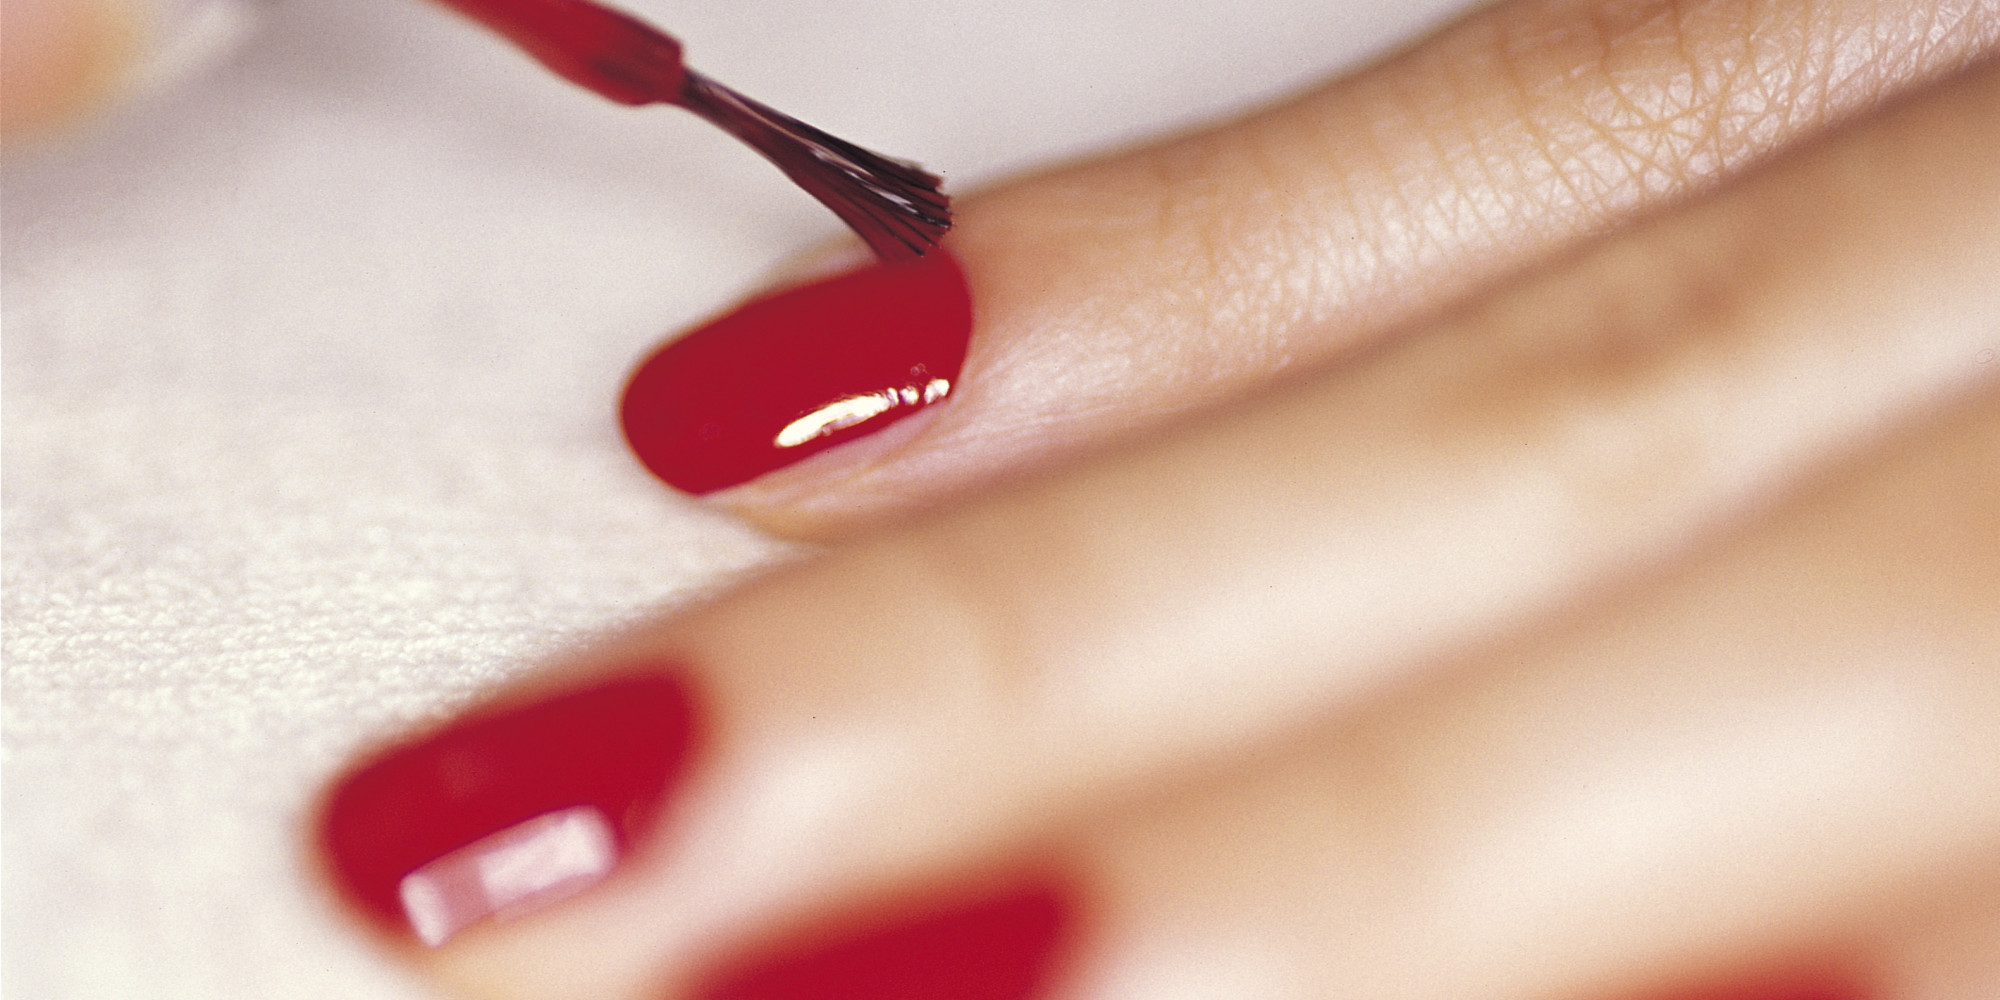 10 Things To Watch Out For At The Nail Salon | HuffPost